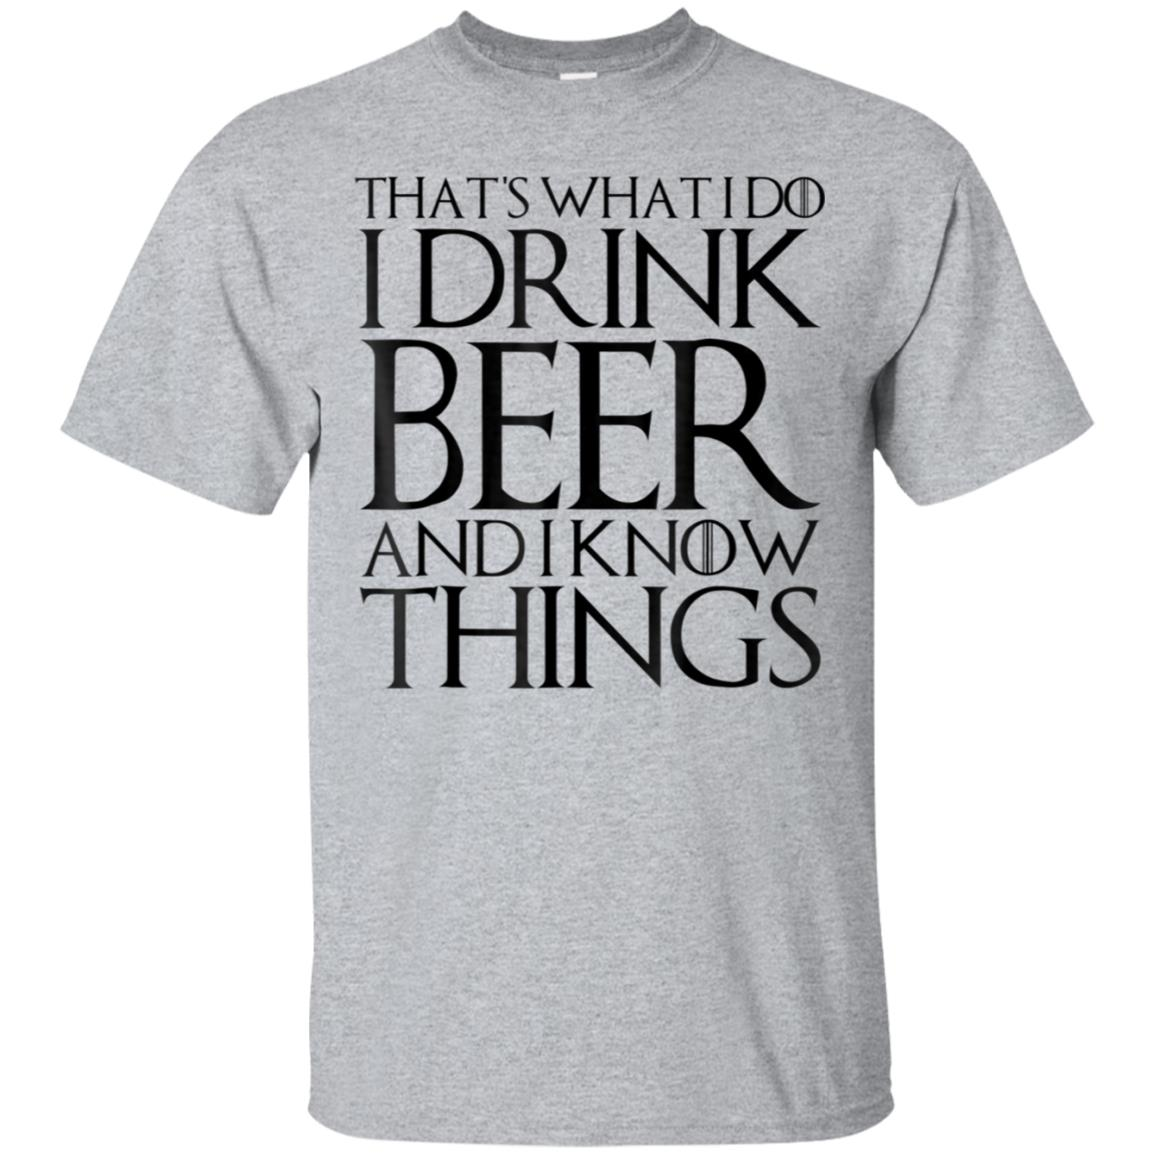 THAT'S WHAT I DO I DRINK BEER AND I KNOW THINGS T-Shirt 99promocode